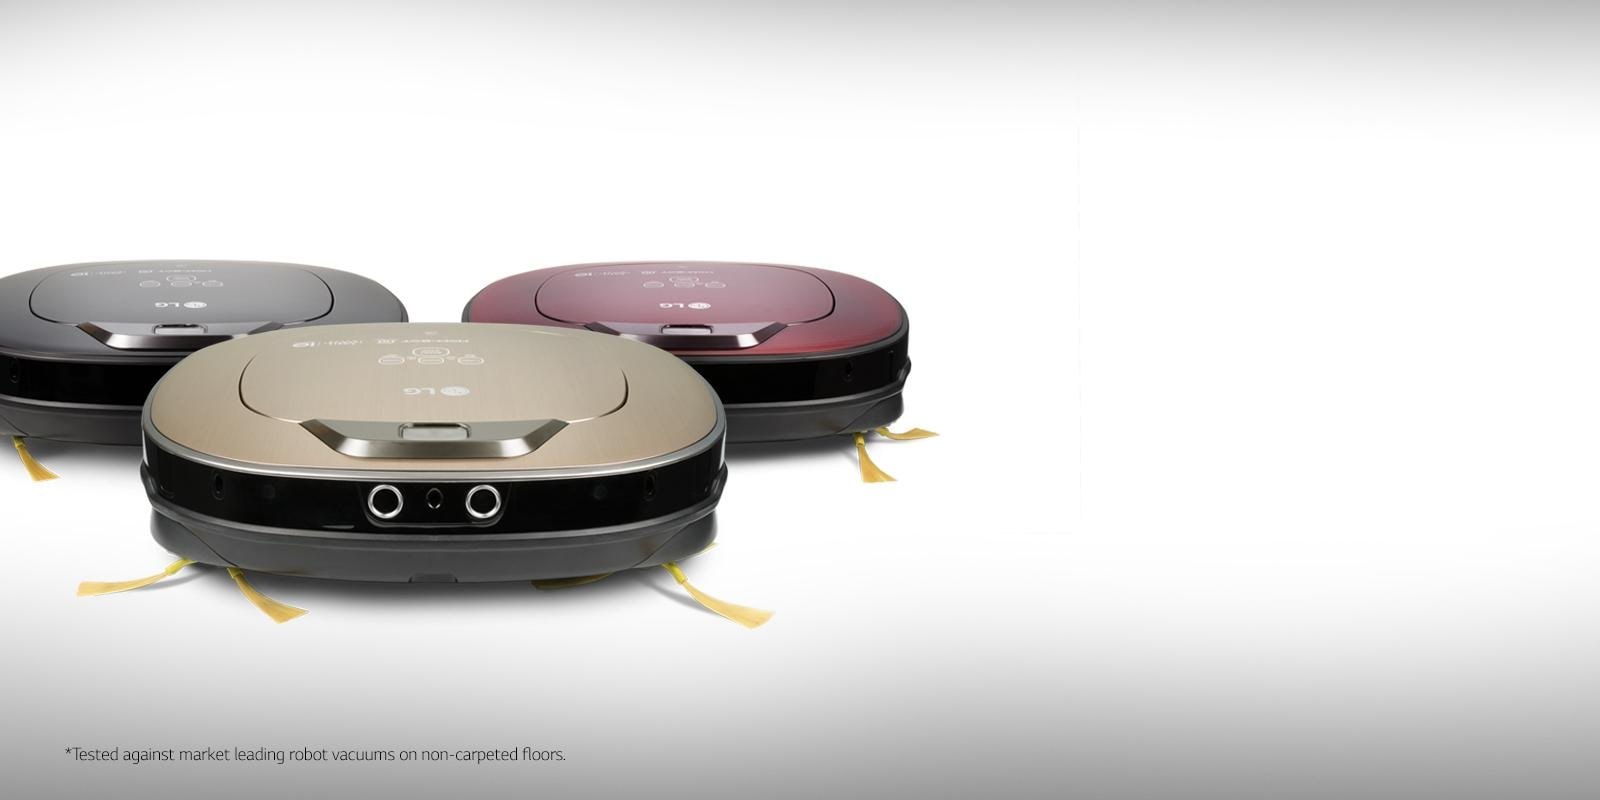 Make Some Noise For the Quietest Robot Vacuum*